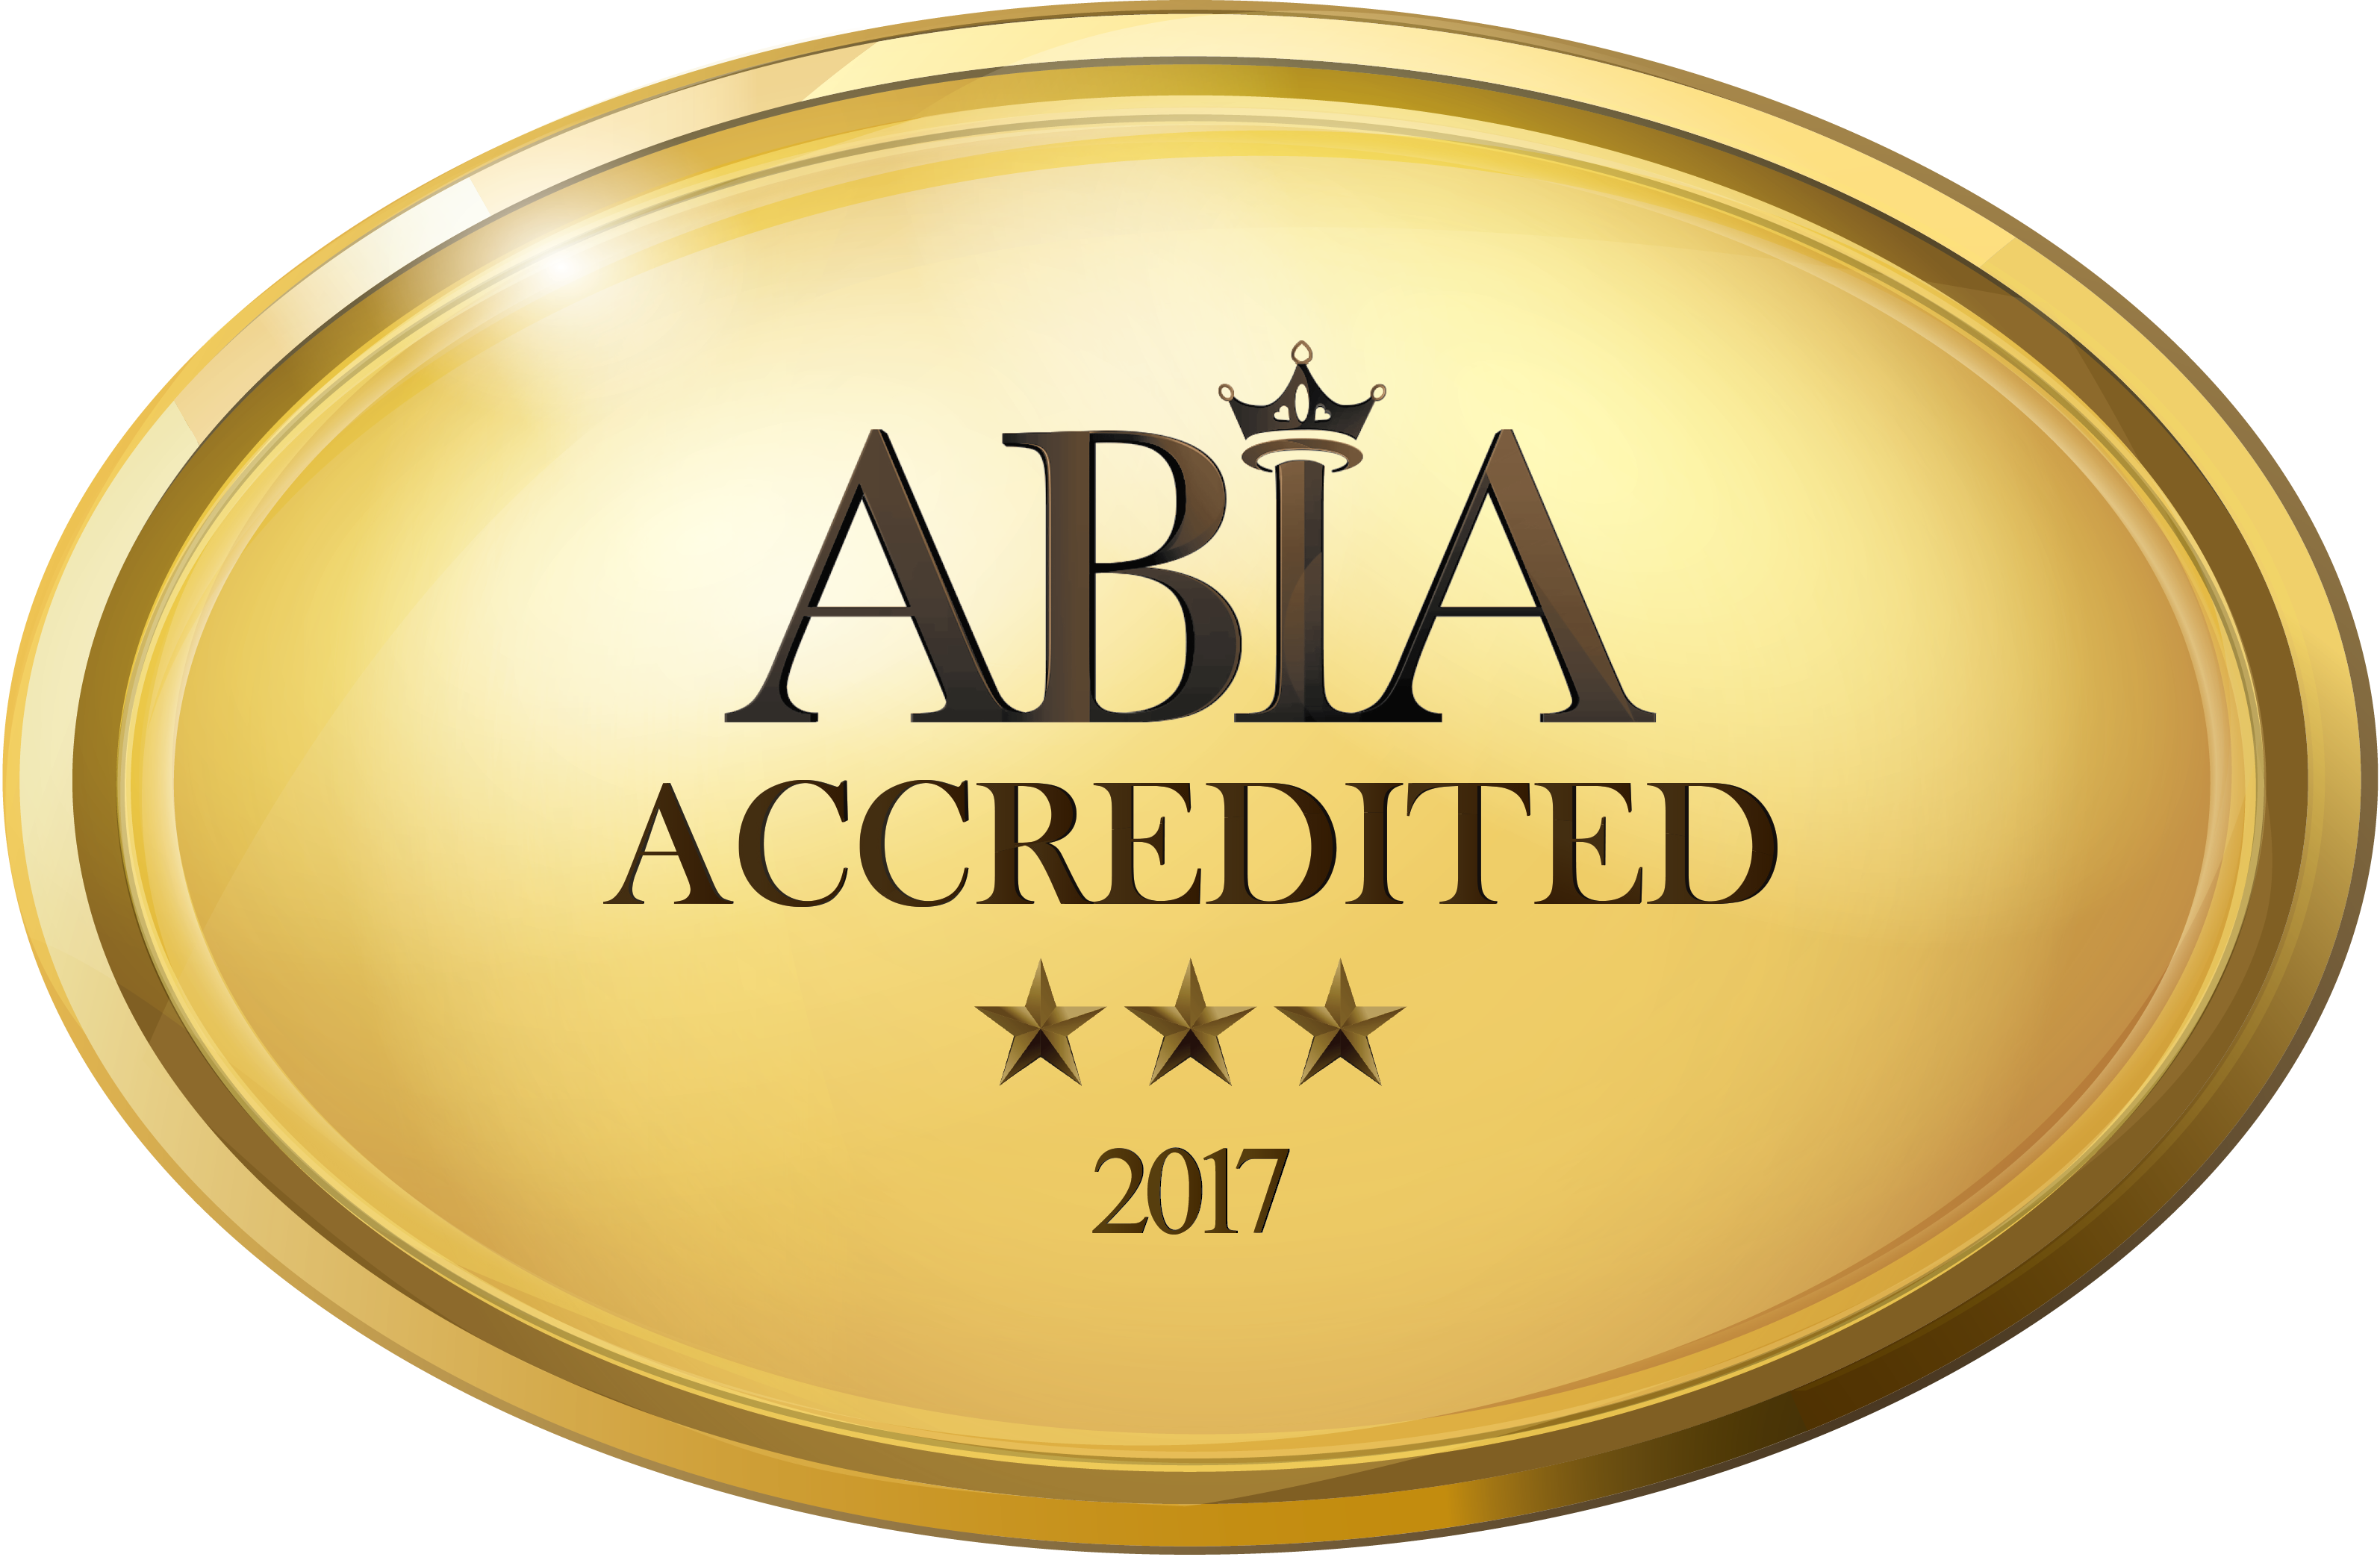 ABIA-Accredited-Luke-Middlemiss-Photography